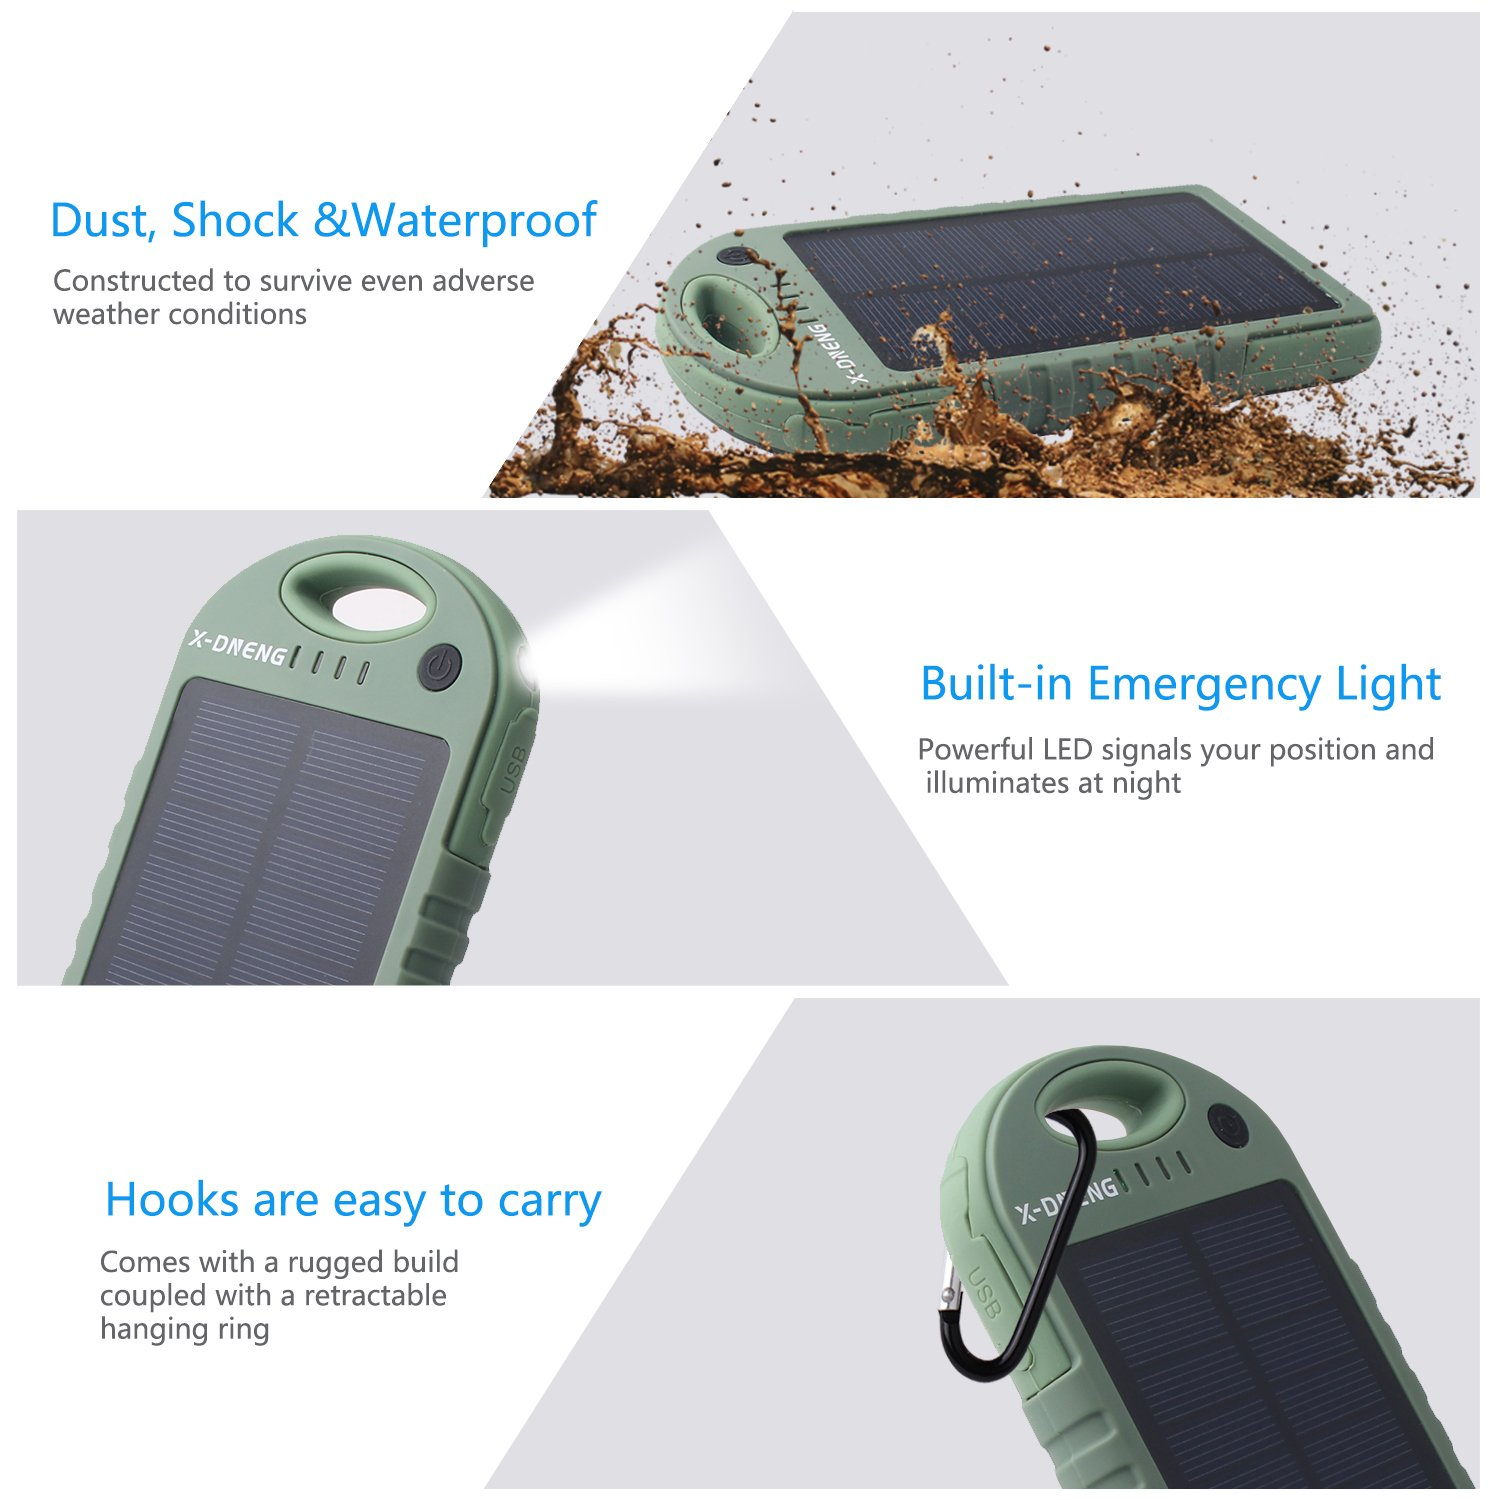 Waterproof Solar Charger, 12000mAh Mobile Solar Power Bank, X-DNENG Portable Outdoor Solar Battery Pack with Dual USB and LED Flashlights for iPhone X, 8, 7, 6s, iPad & Android, Galaxy S8, S7, S6, S5, Edge & more